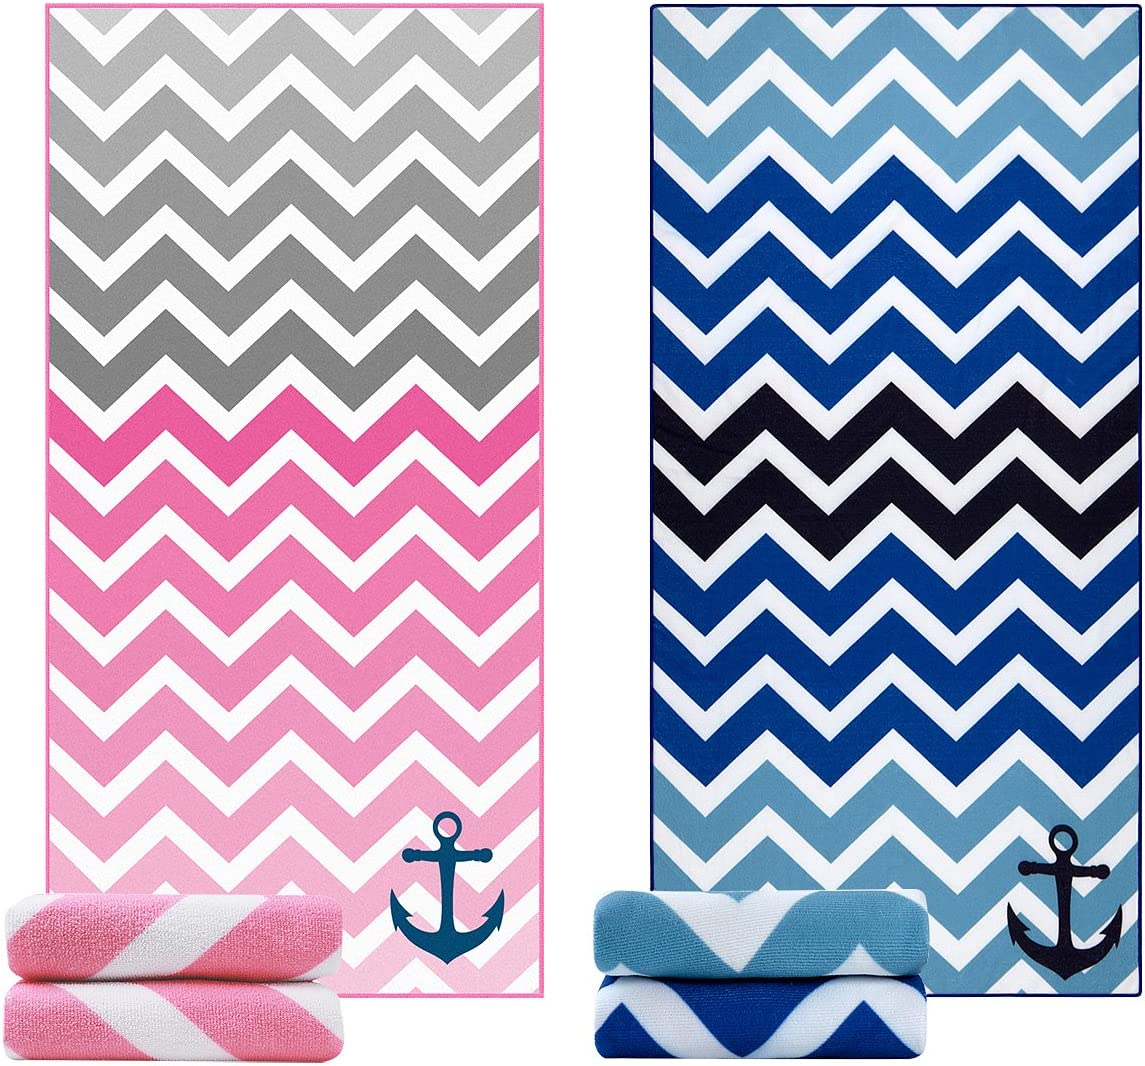 Beach Towel Large Beach Blanket Towel Pack of 2 Ultra Soft Super Water Absorbent